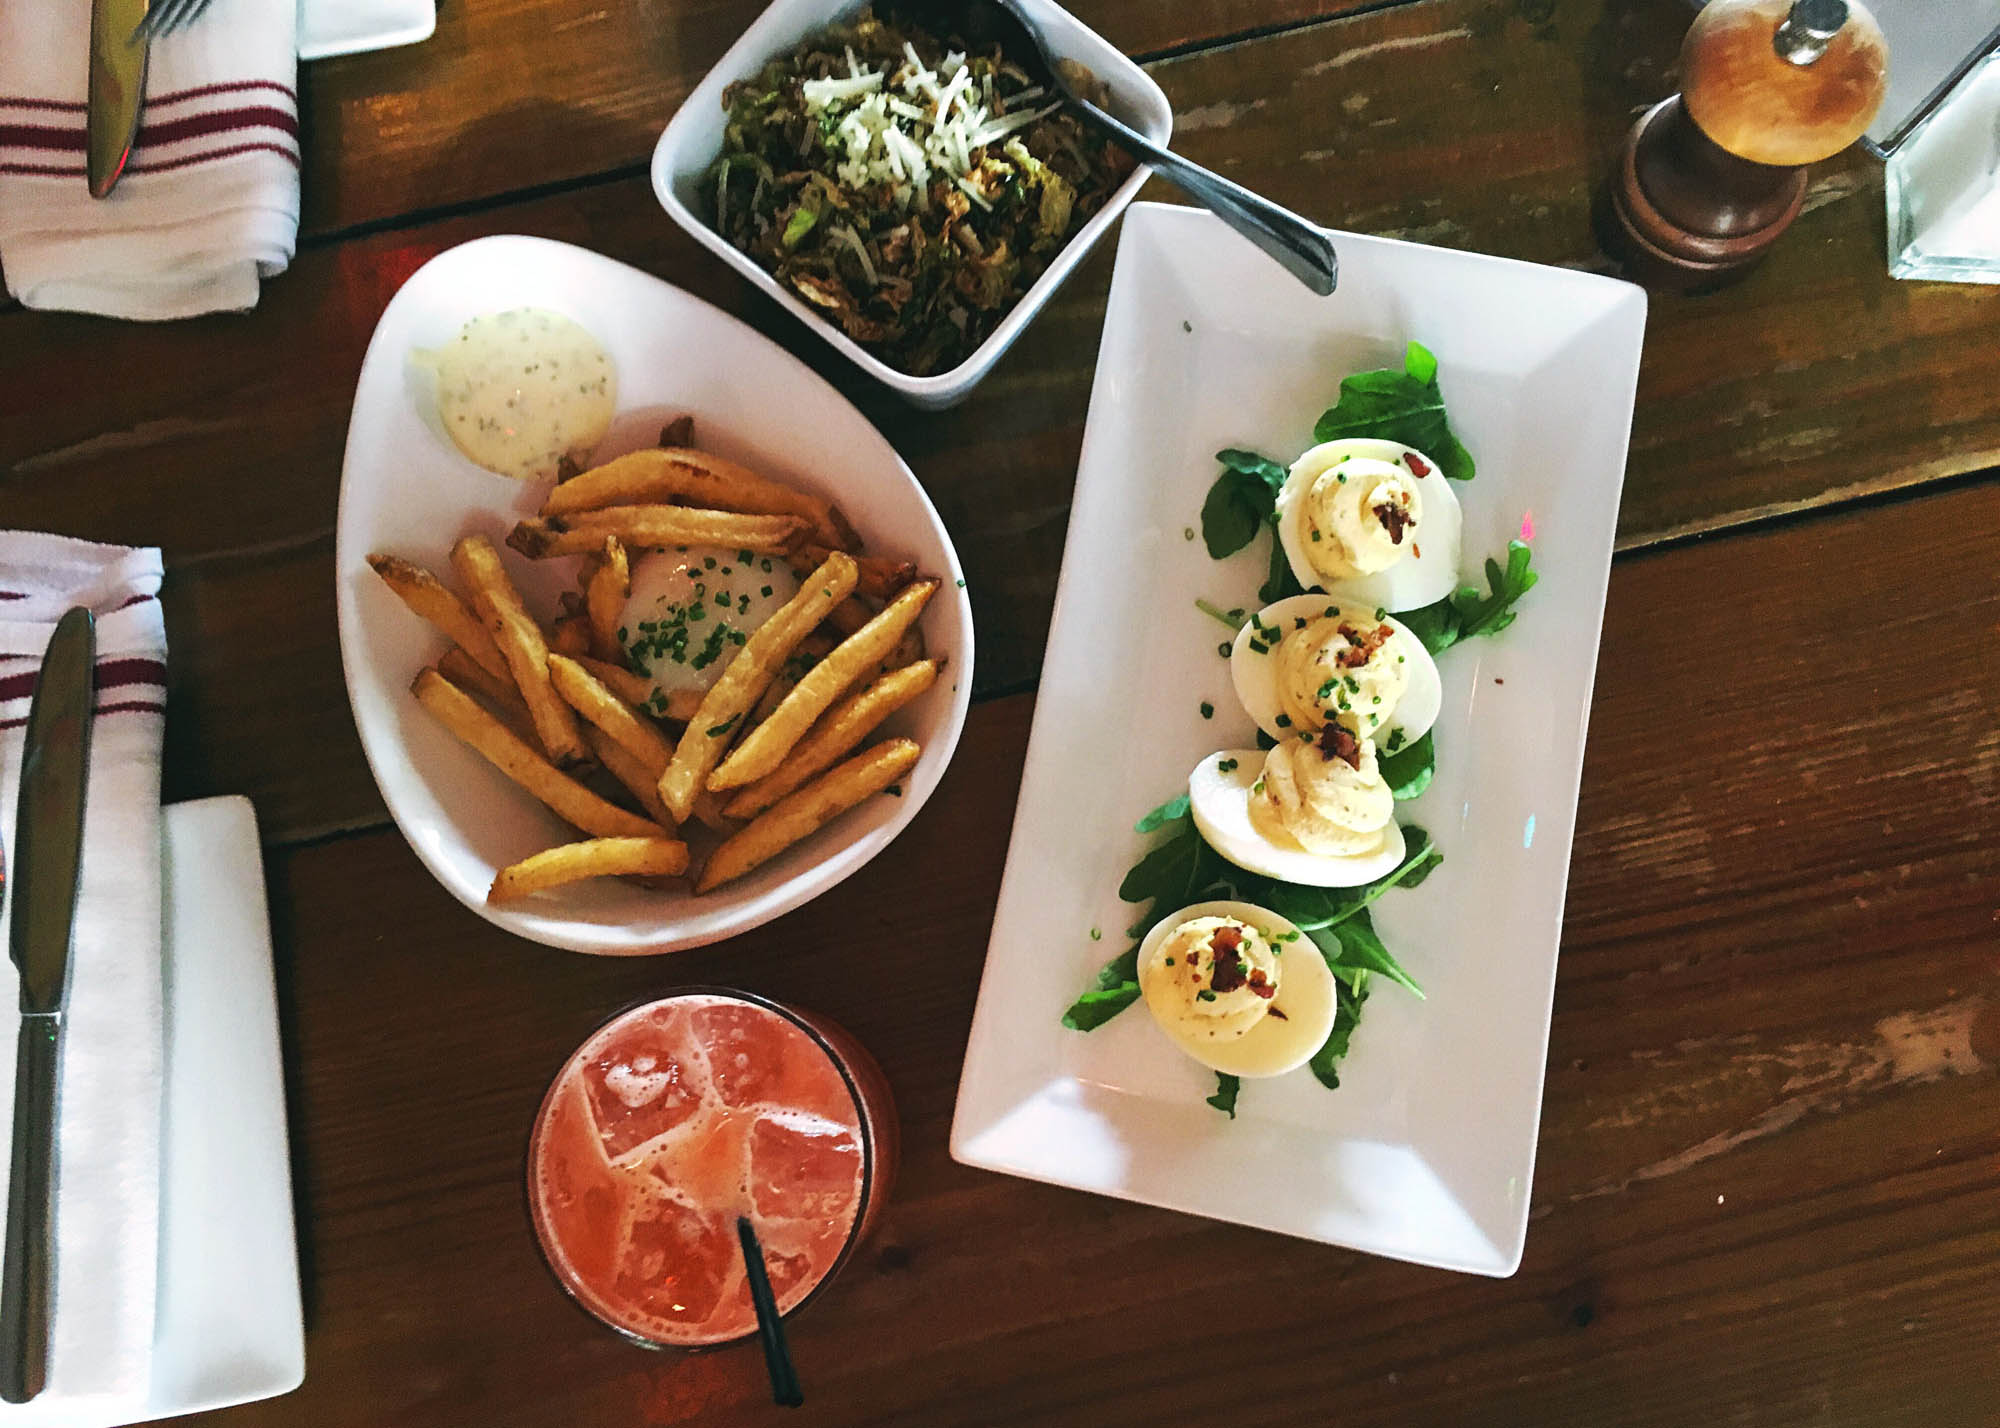 Truffled deviled eggs, duck fat fries, and crispy brussels sprout leaves at Salty Sow in Austin, Texas.